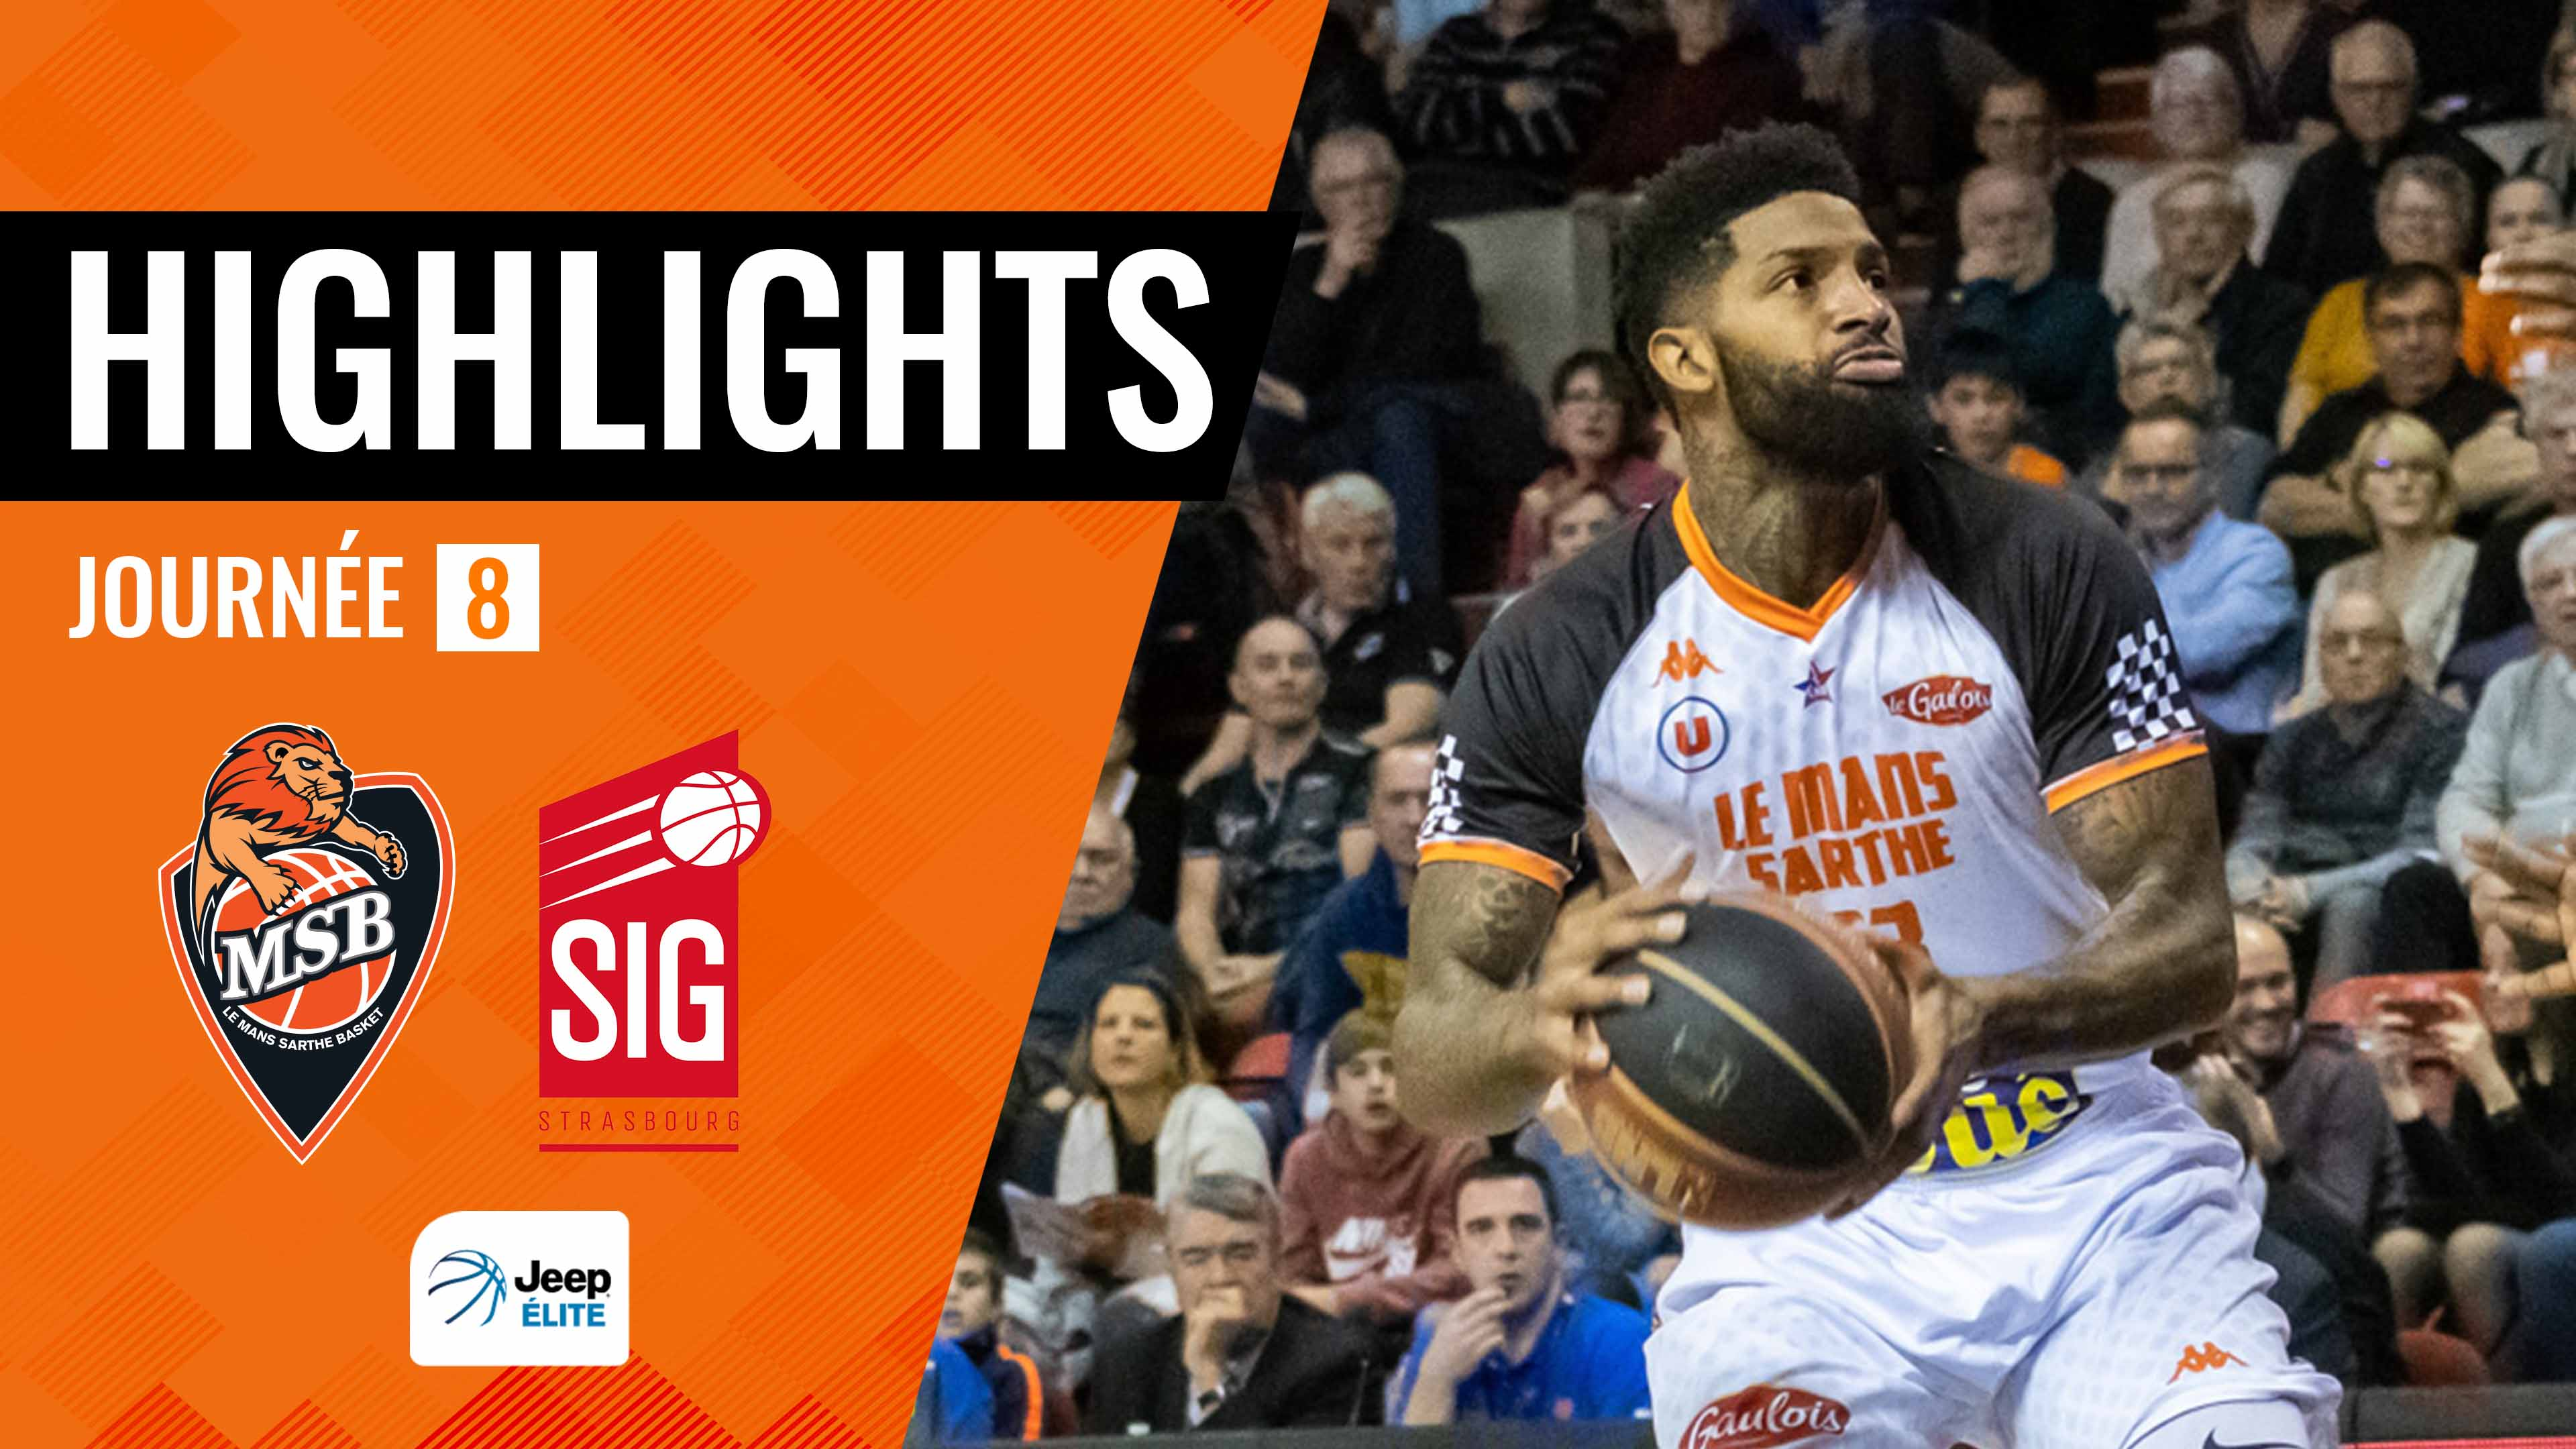 Highlights MSB - Strasbourg